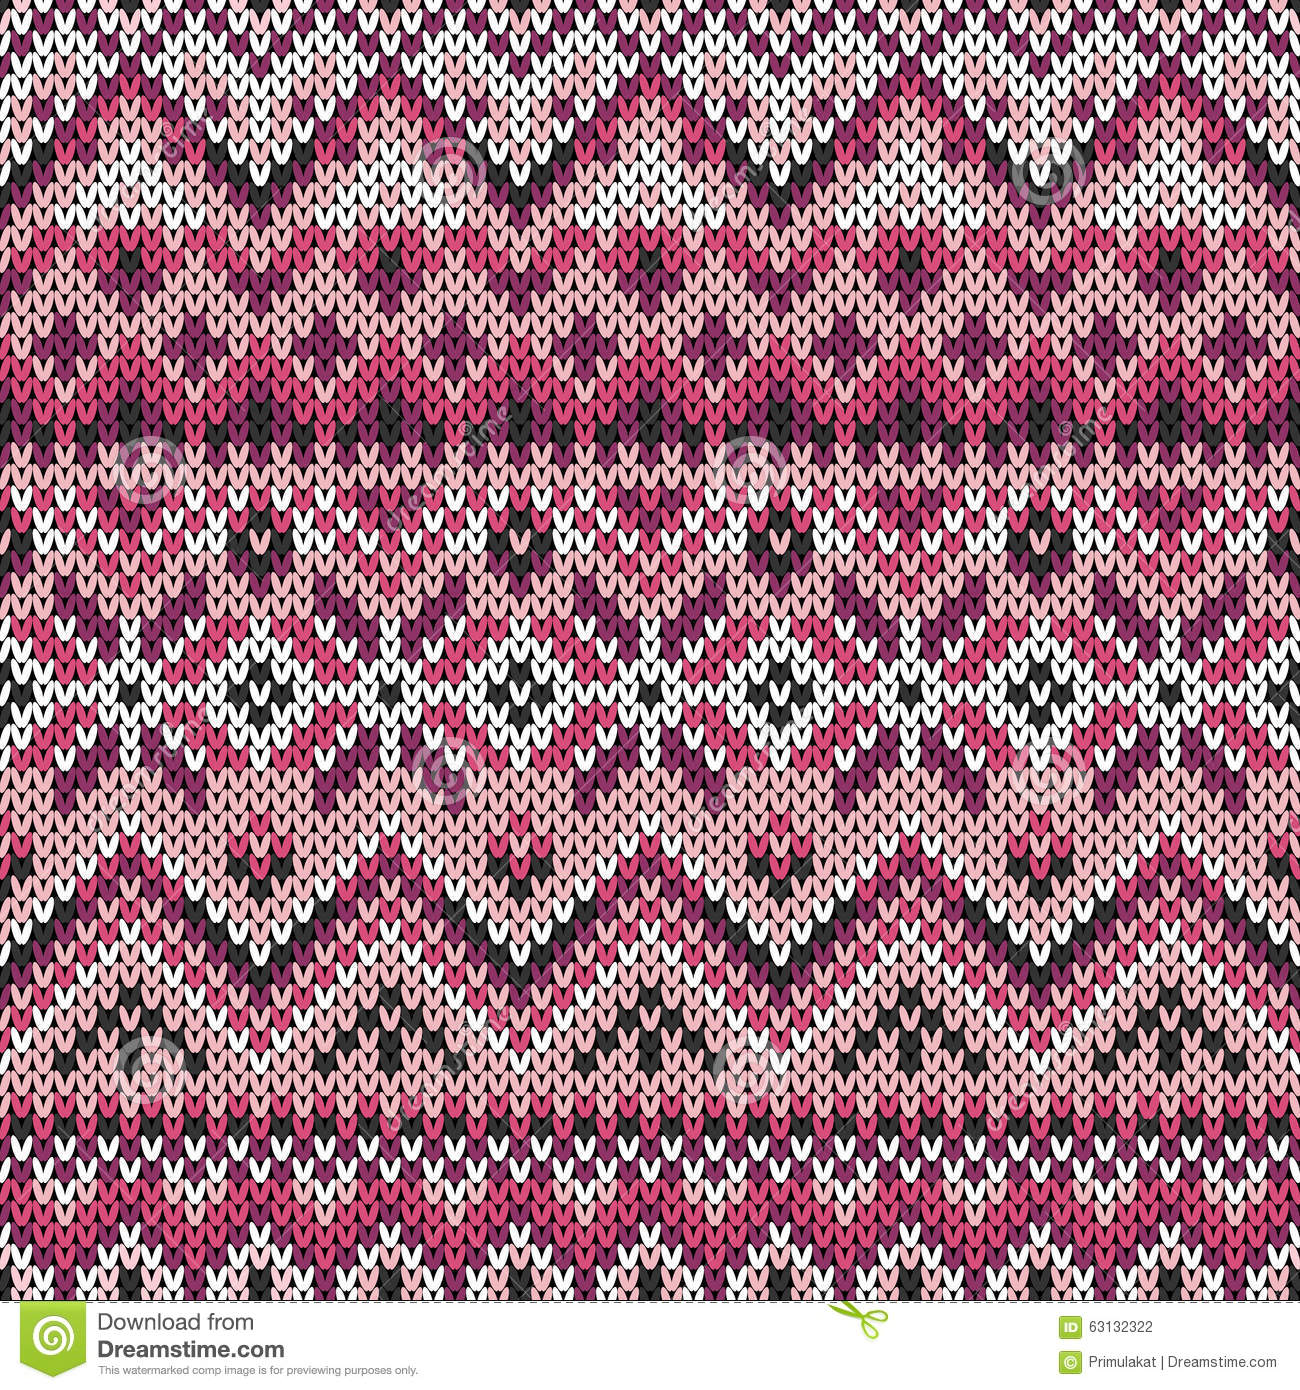 Knit Pattern Christmas Vector : Vector Seamless Lilac Ornament On Knitted Texture Stock Vector - Image: 63132322